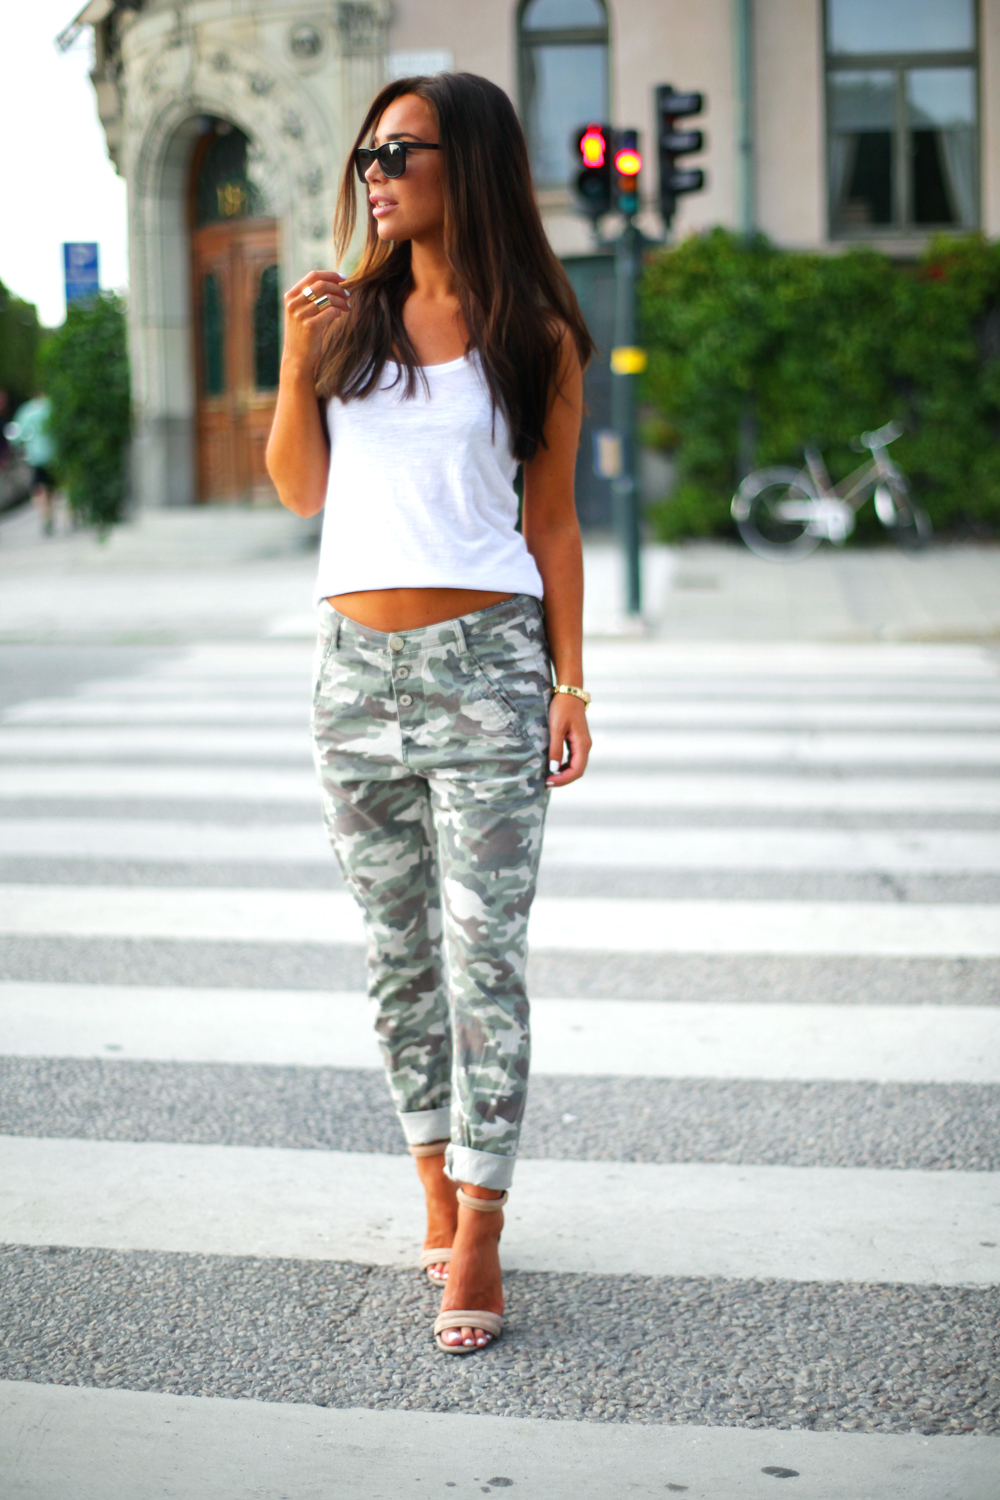 Johanna Olsson is wearing a camo pants from Lindex, top from Gina Tricot, shoes from Nicholas and sunglasses from Givenchy